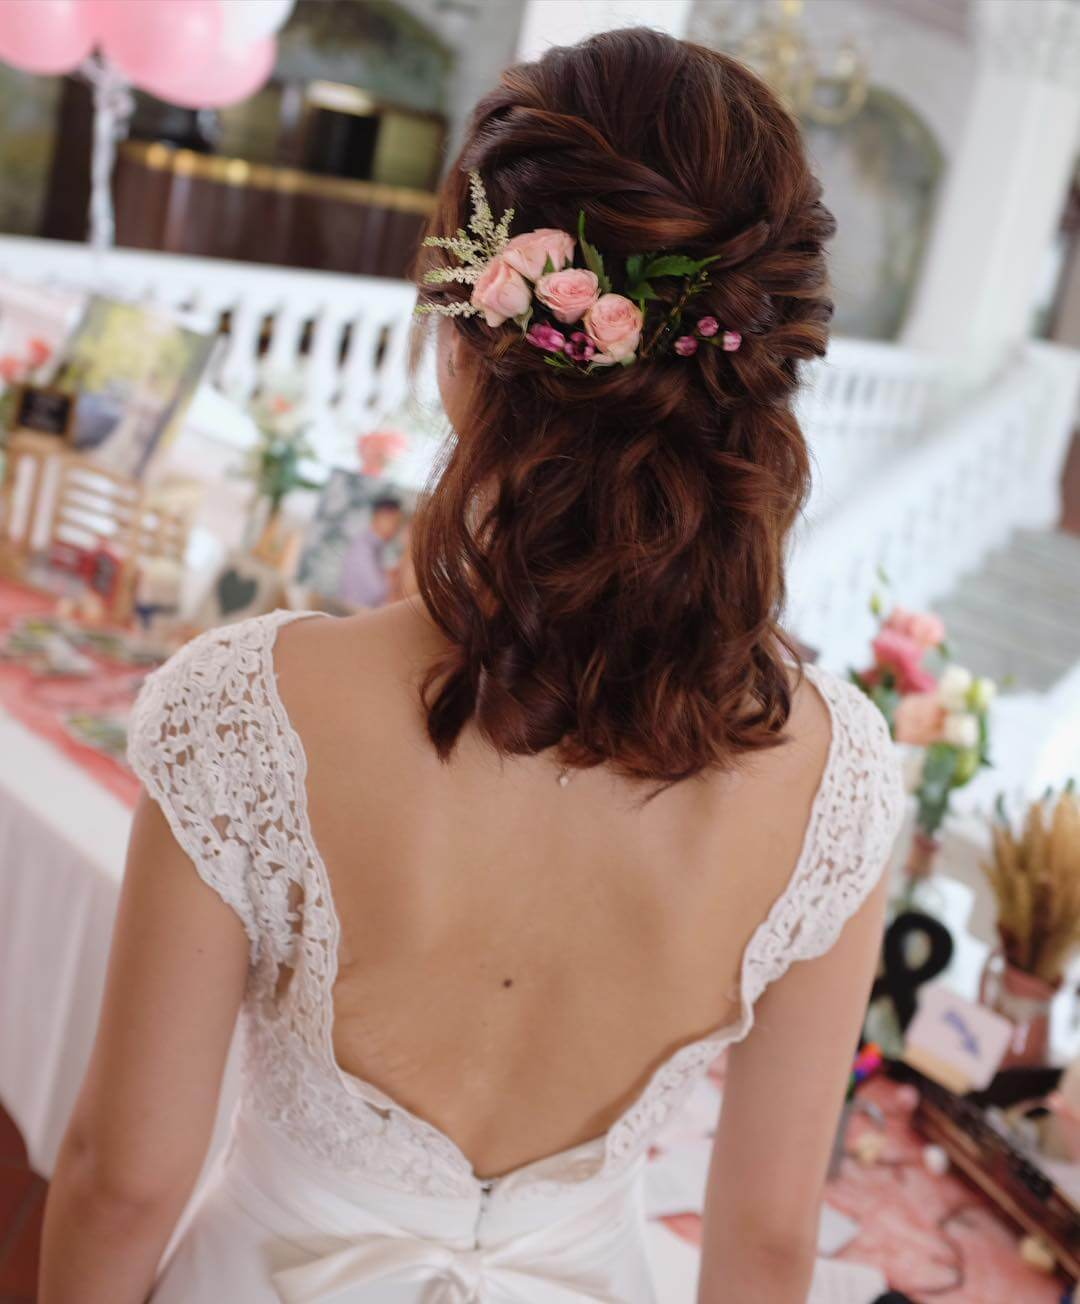 Wedding Hairstyle For Bride: 25+ Curly Wedding Hairstyle Ideas, Designs